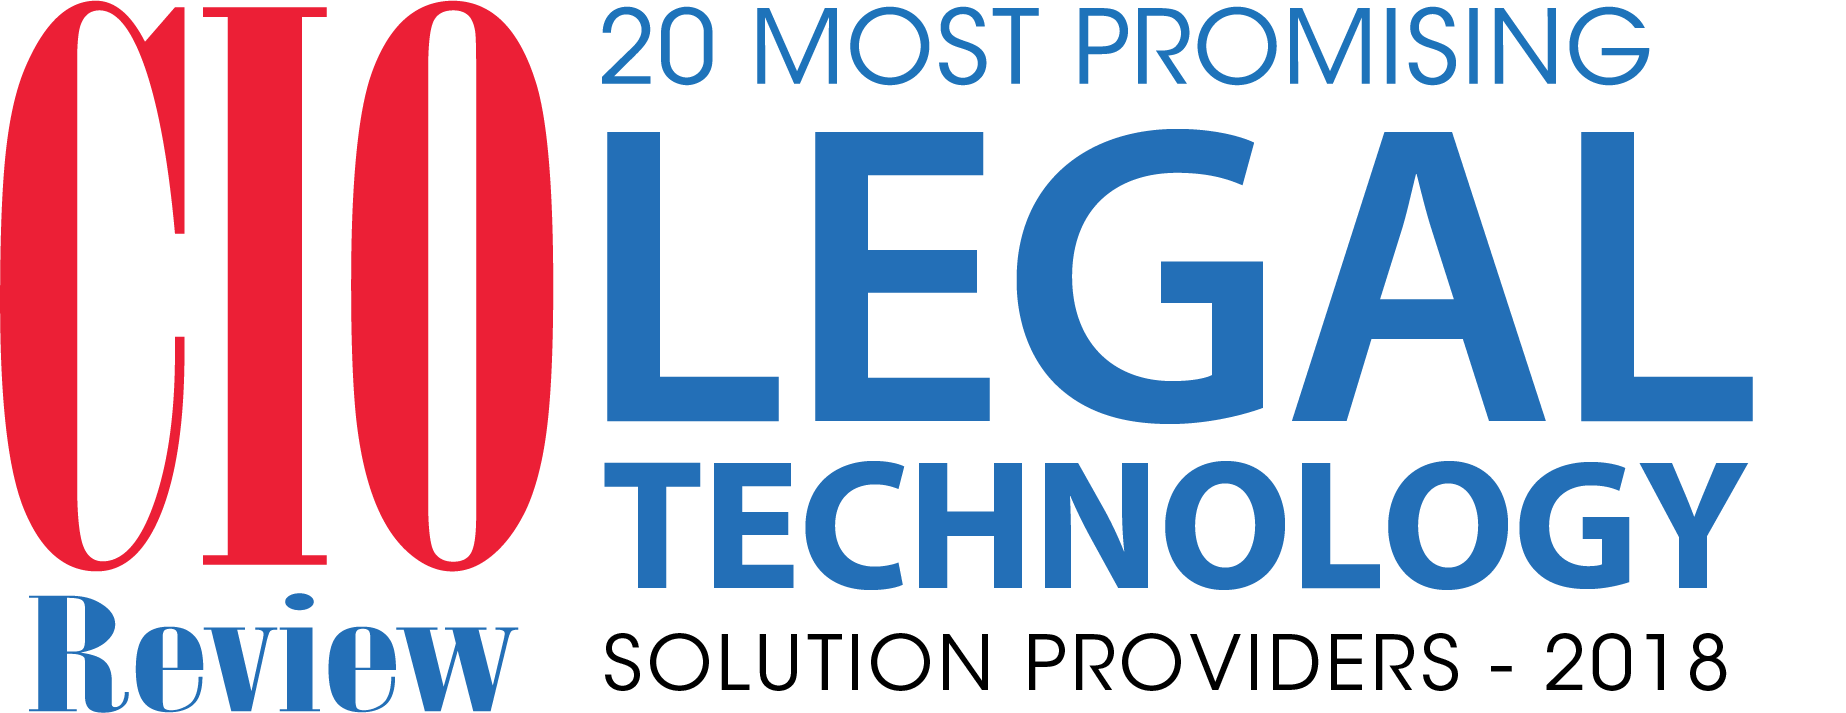 CIO named ContractSafe as one of the top providers of legal technology solutions for 2018.